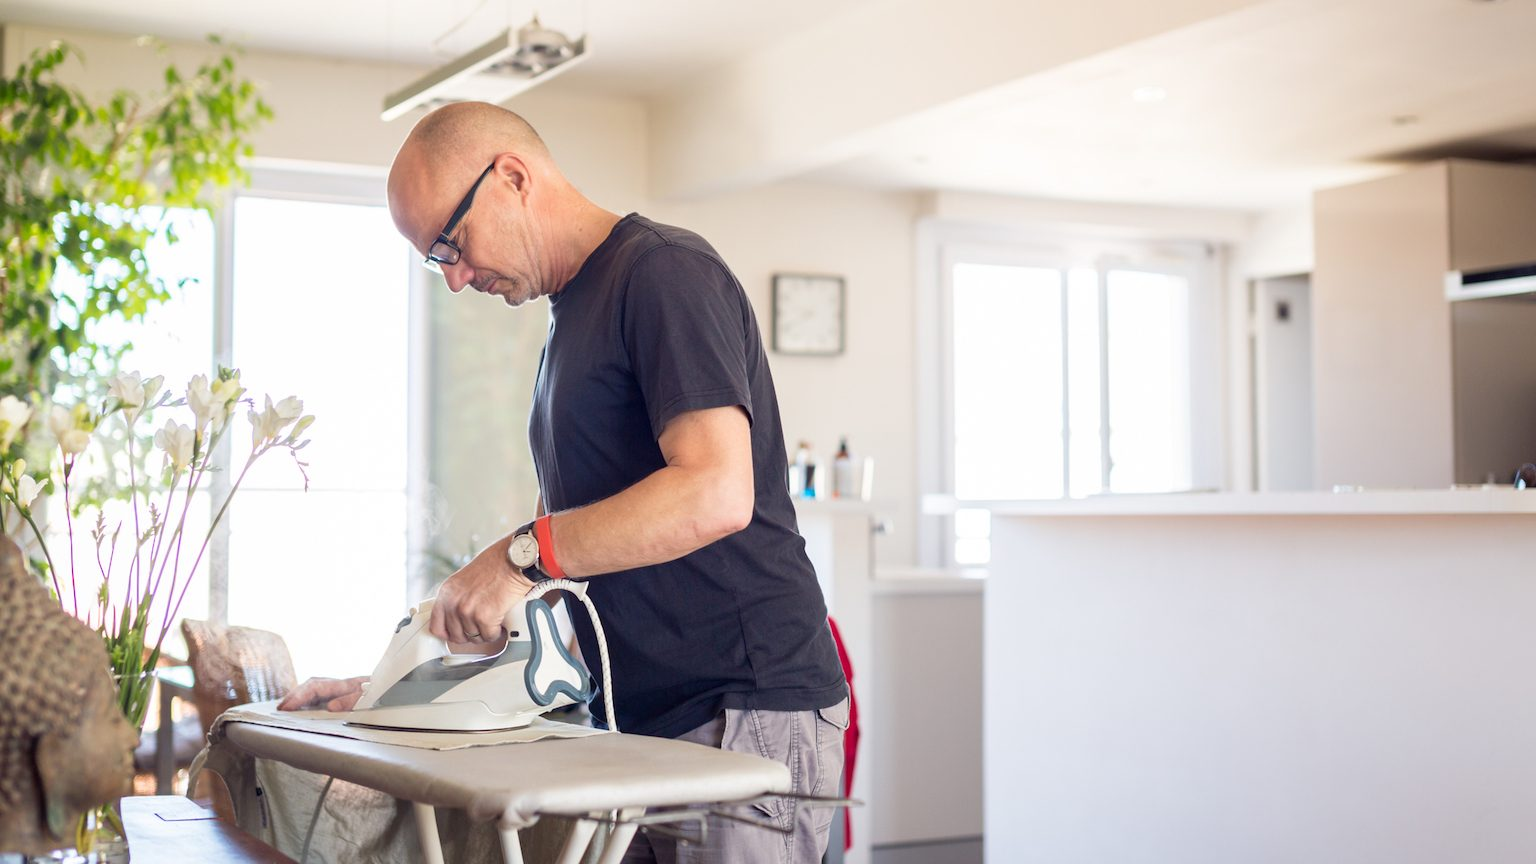 Man using an iron on an ironing board at home